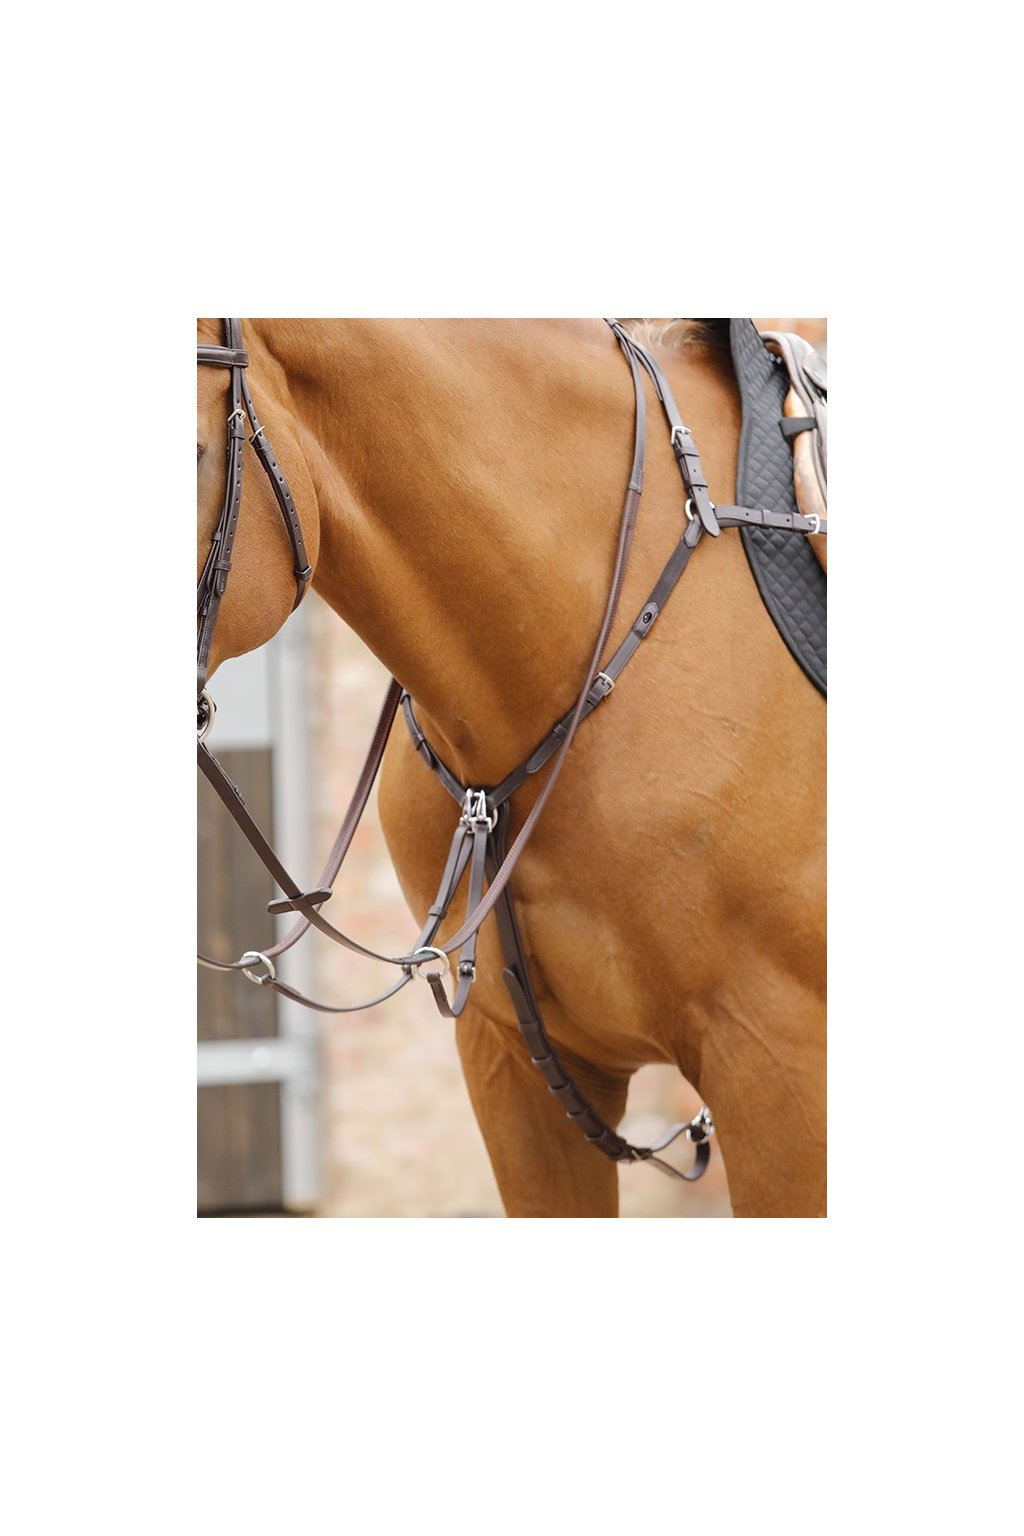 Valbrona Performance Breastplate Brown RGB x900